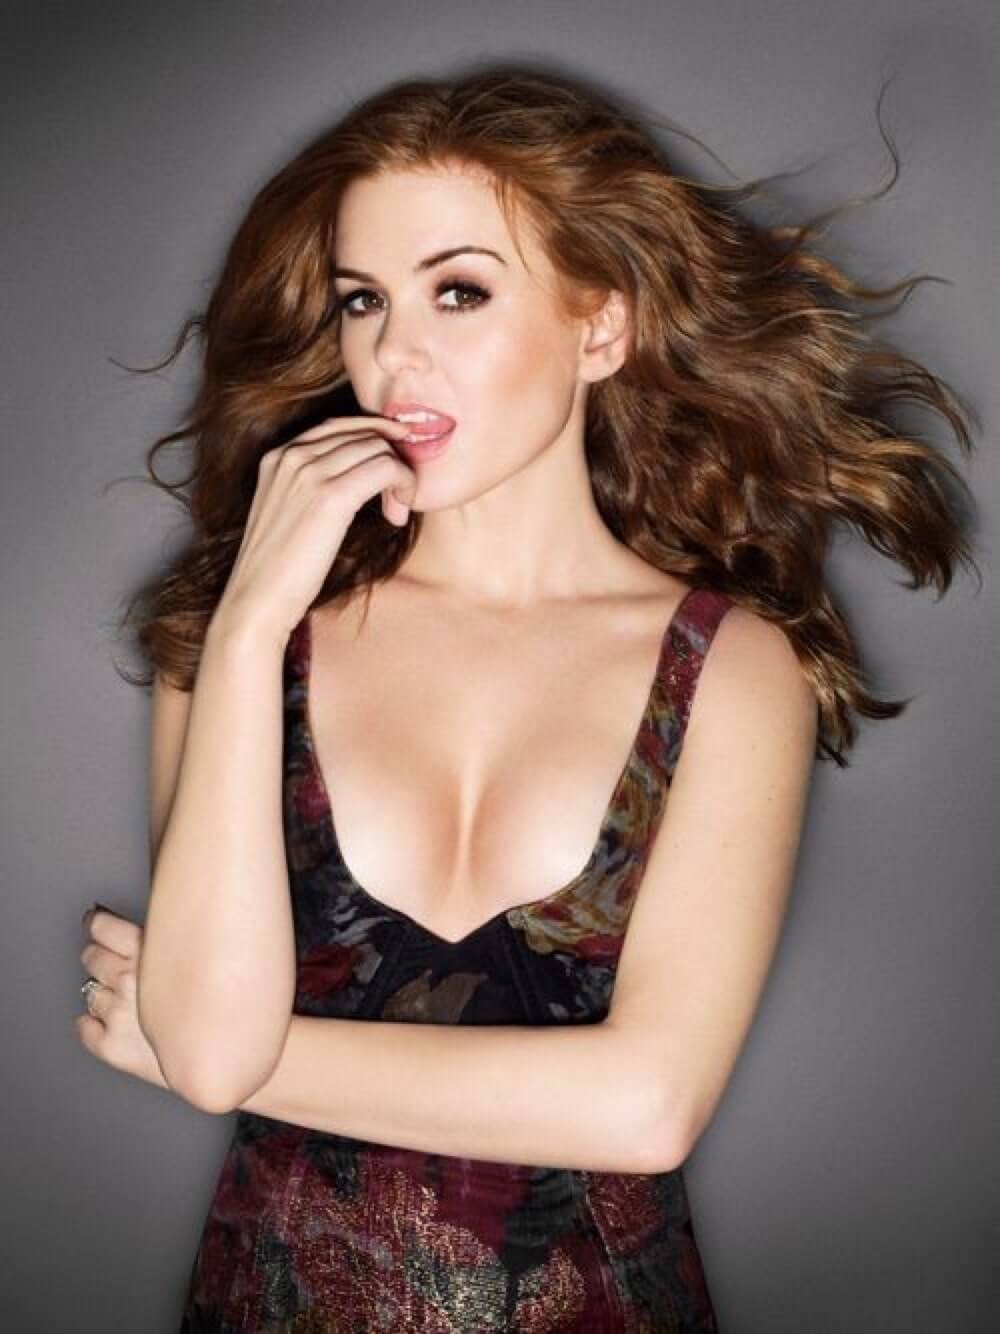 isla-fisher-awesome pics (2)